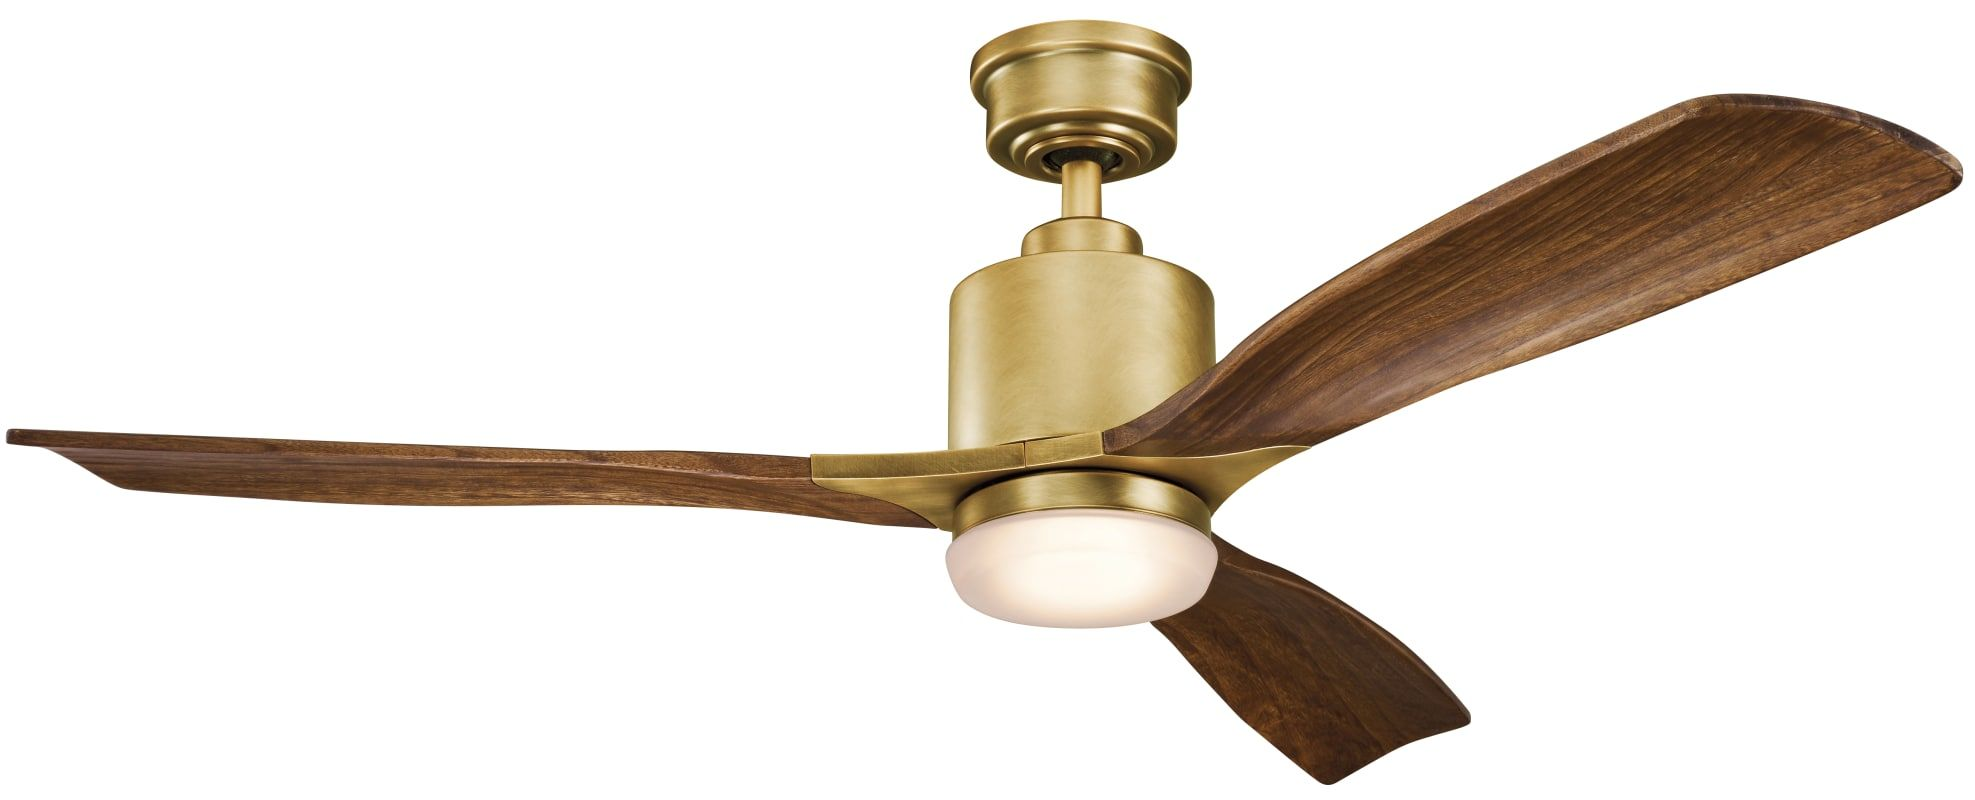 Kichler 300027nbr Natural Brass Ridley Ii 52 Ceiling Fan With Blades Led Light Kit And Wall Control In 2020 Ceiling Fan Ceiling Fan With Light Stainless Steel Ceiling Fan